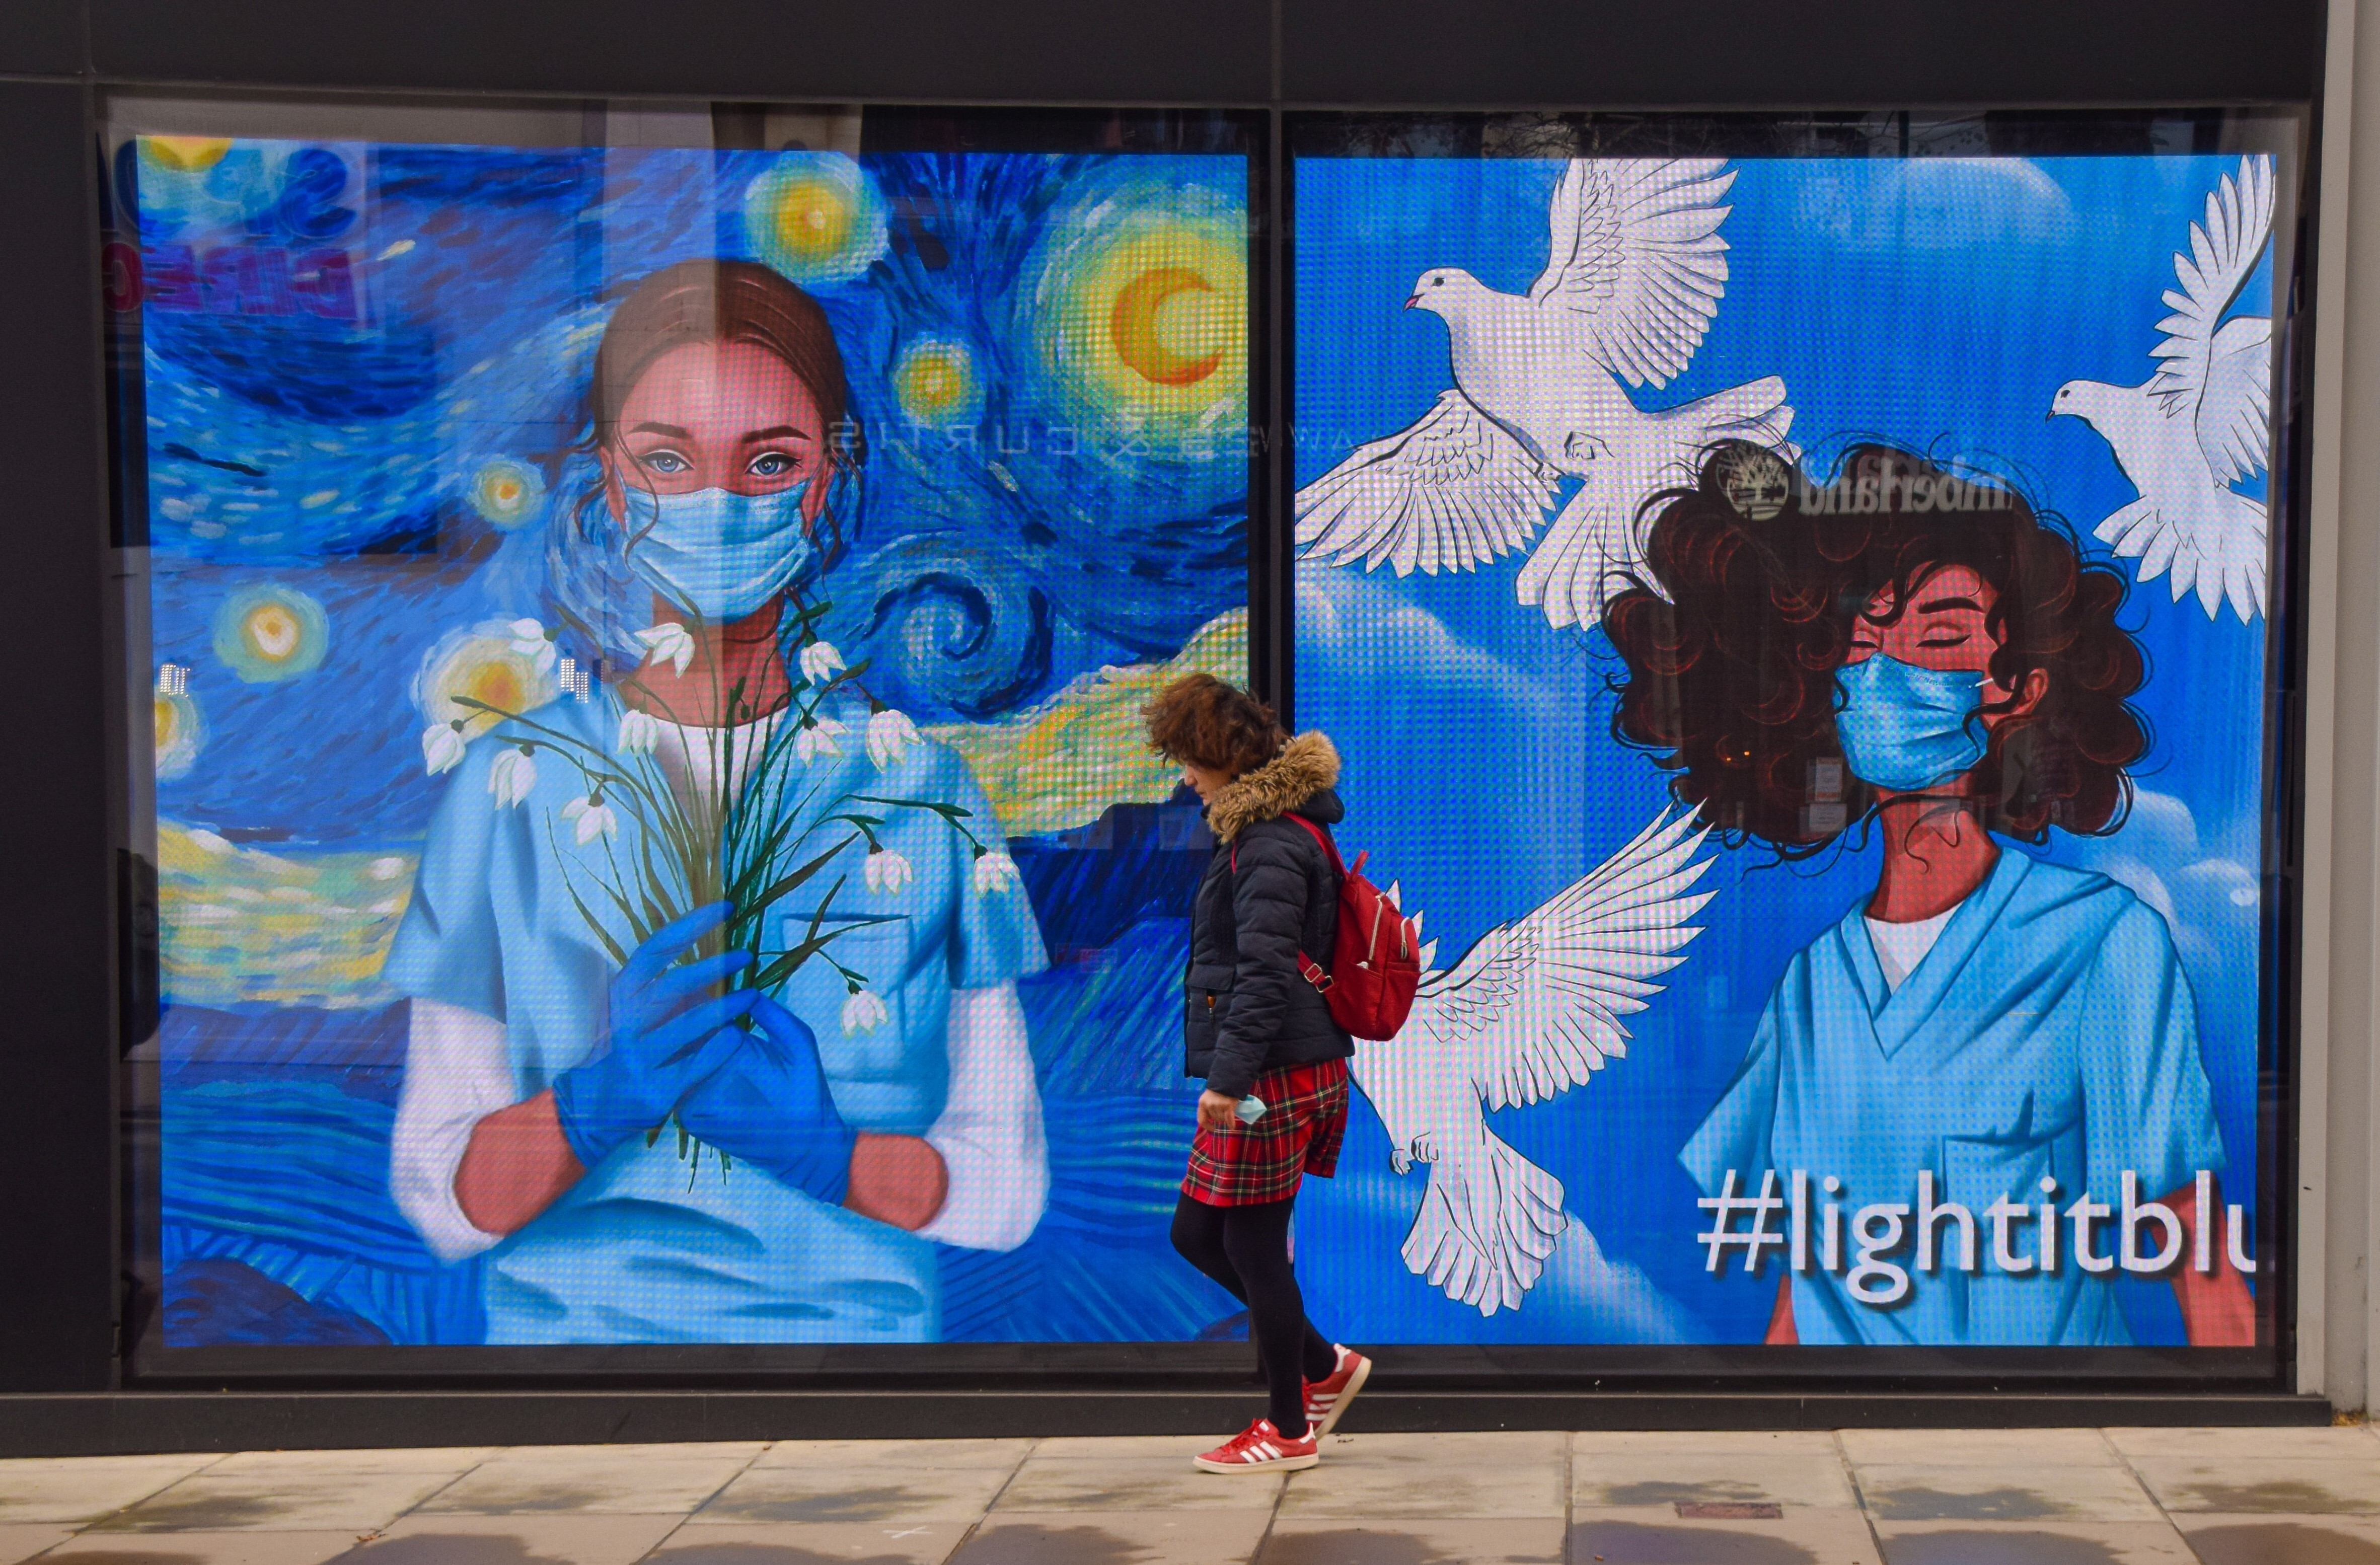 <p>A woman walks past the screens displaying medical workers wearing face masks at the Flannels store on Oxford Street in London. The screens at the store were showing a series of artworks as part of the 'Light It Blue' campaign in support of the NHS during the coronavirus crisis. (Photo by Vuk Valcic / SOPA Images/Sipa USA)</p>